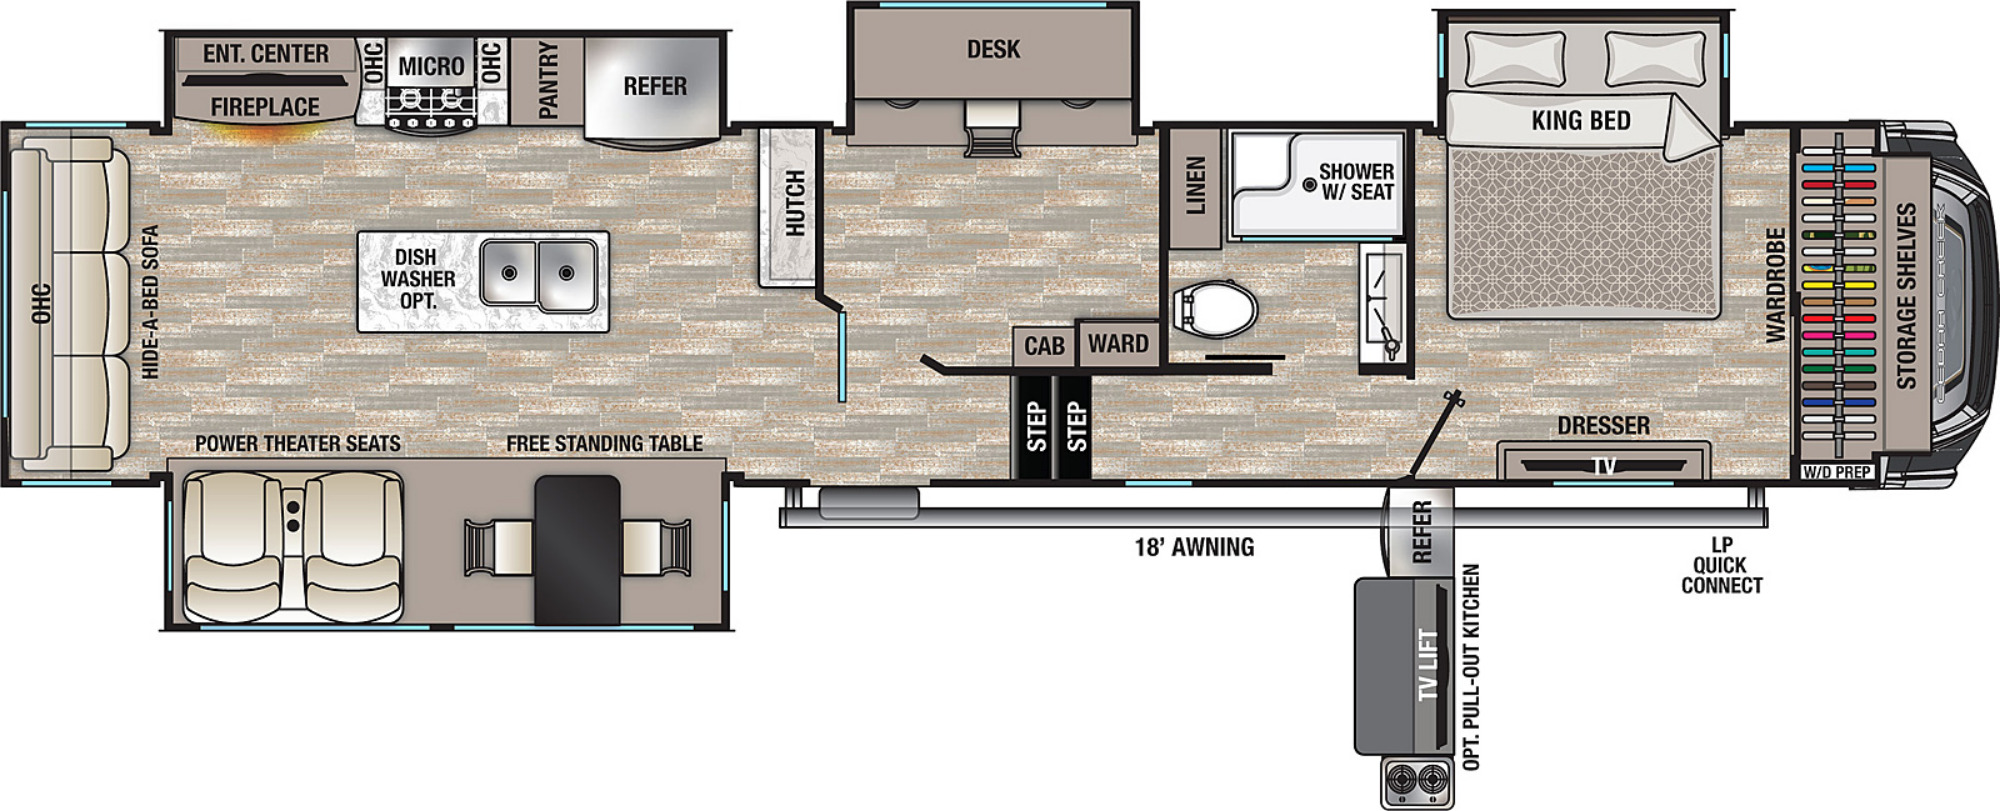 View Floor Plan for 2021 FOREST RIVER CEDAR CREEK 377OF